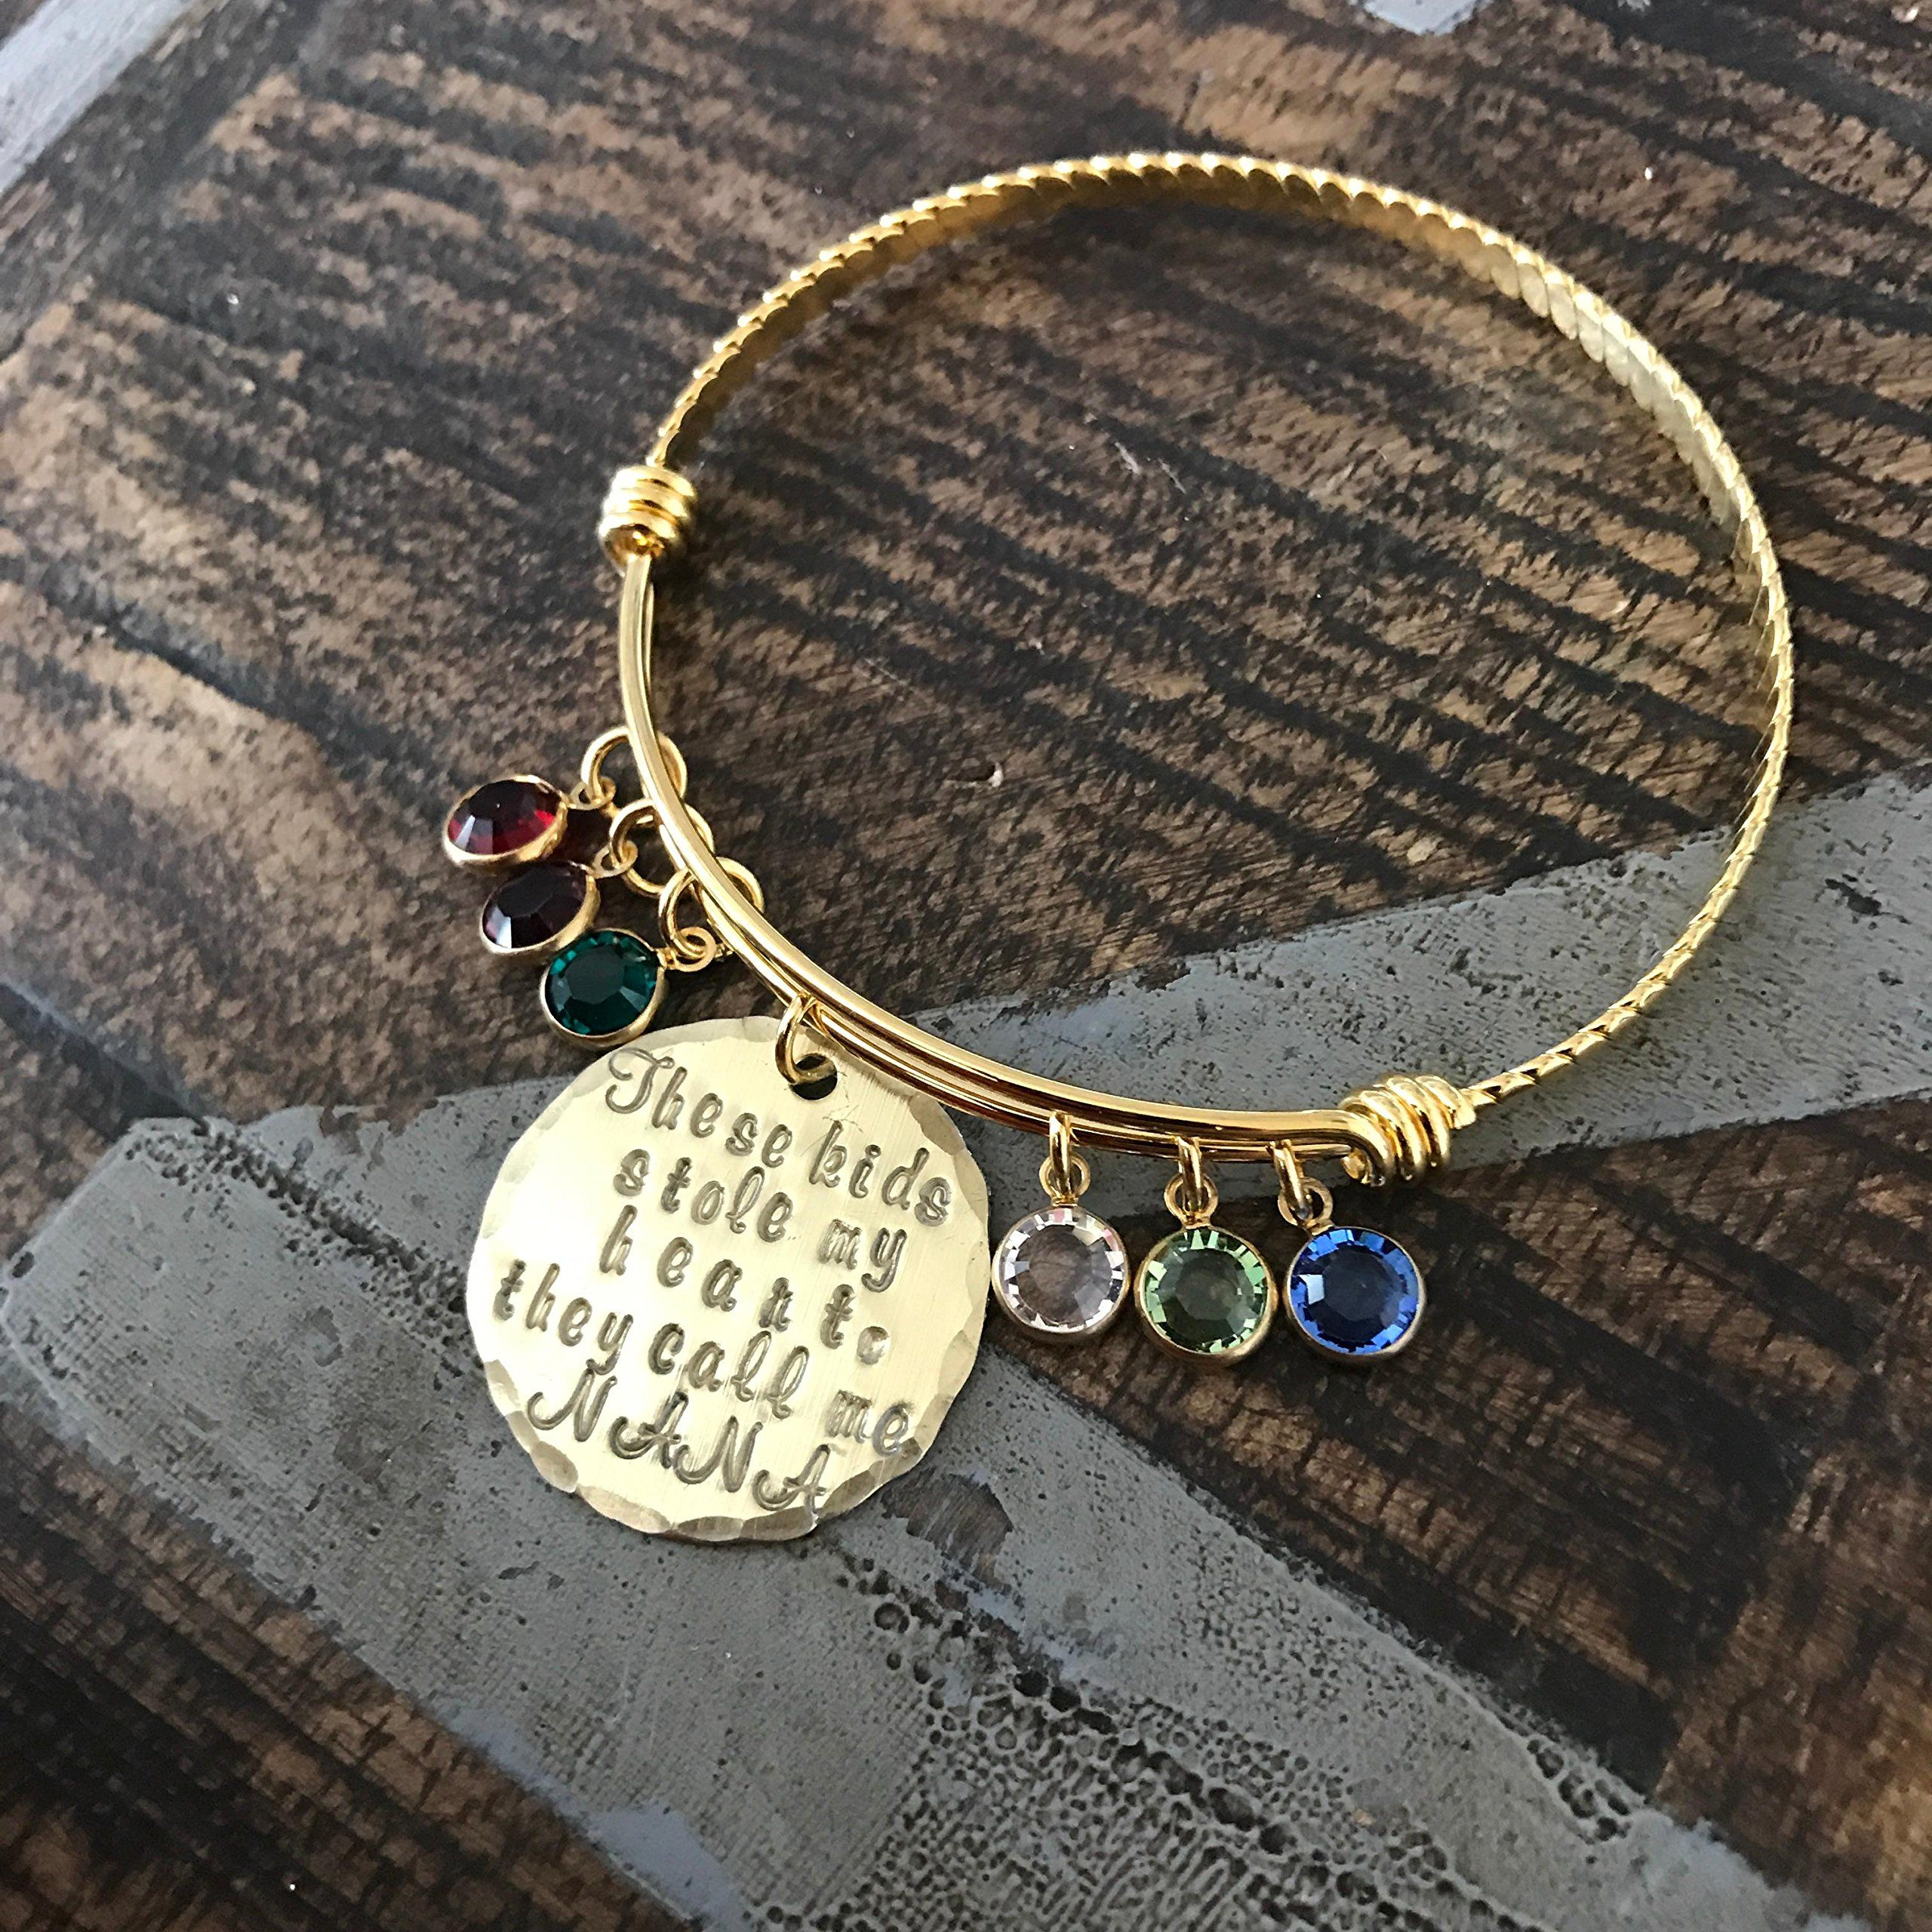 bonus pin bracelet are moms jewelry special heaven gifts from mother stepmom